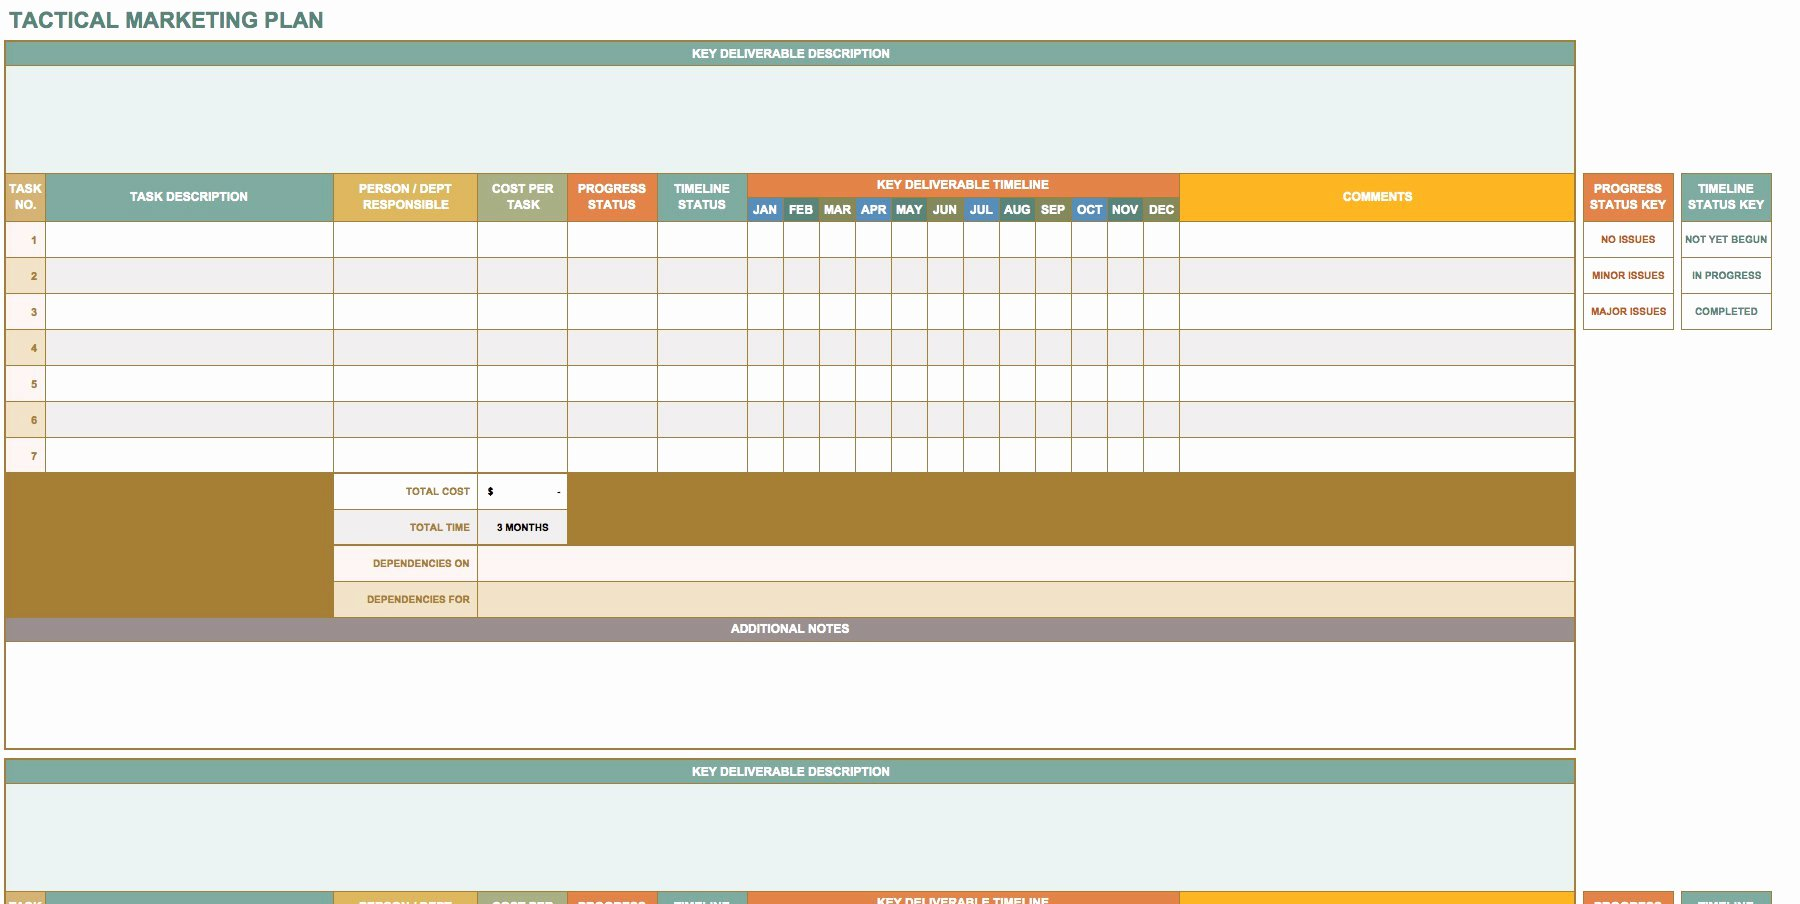 Excel Marketing Plan Template Fresh Free Marketing Plan Templates for Excel Smartsheet